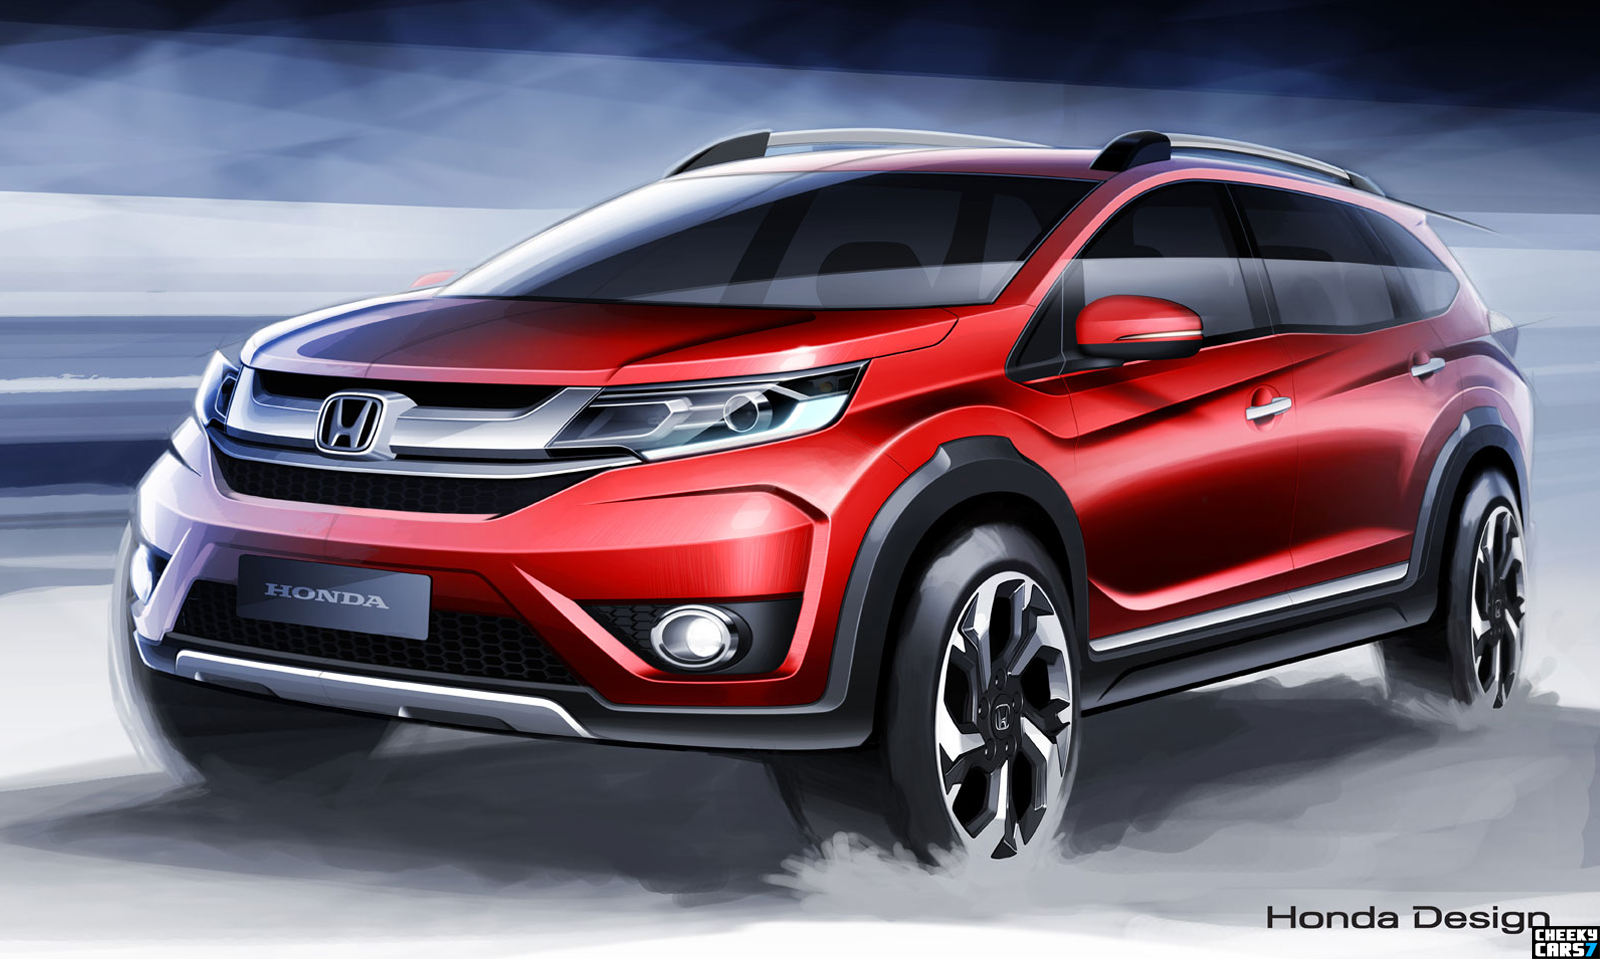 honda brv 2015 video and images new crossover suv br v concept cars 2016 pictures car videos. Black Bedroom Furniture Sets. Home Design Ideas